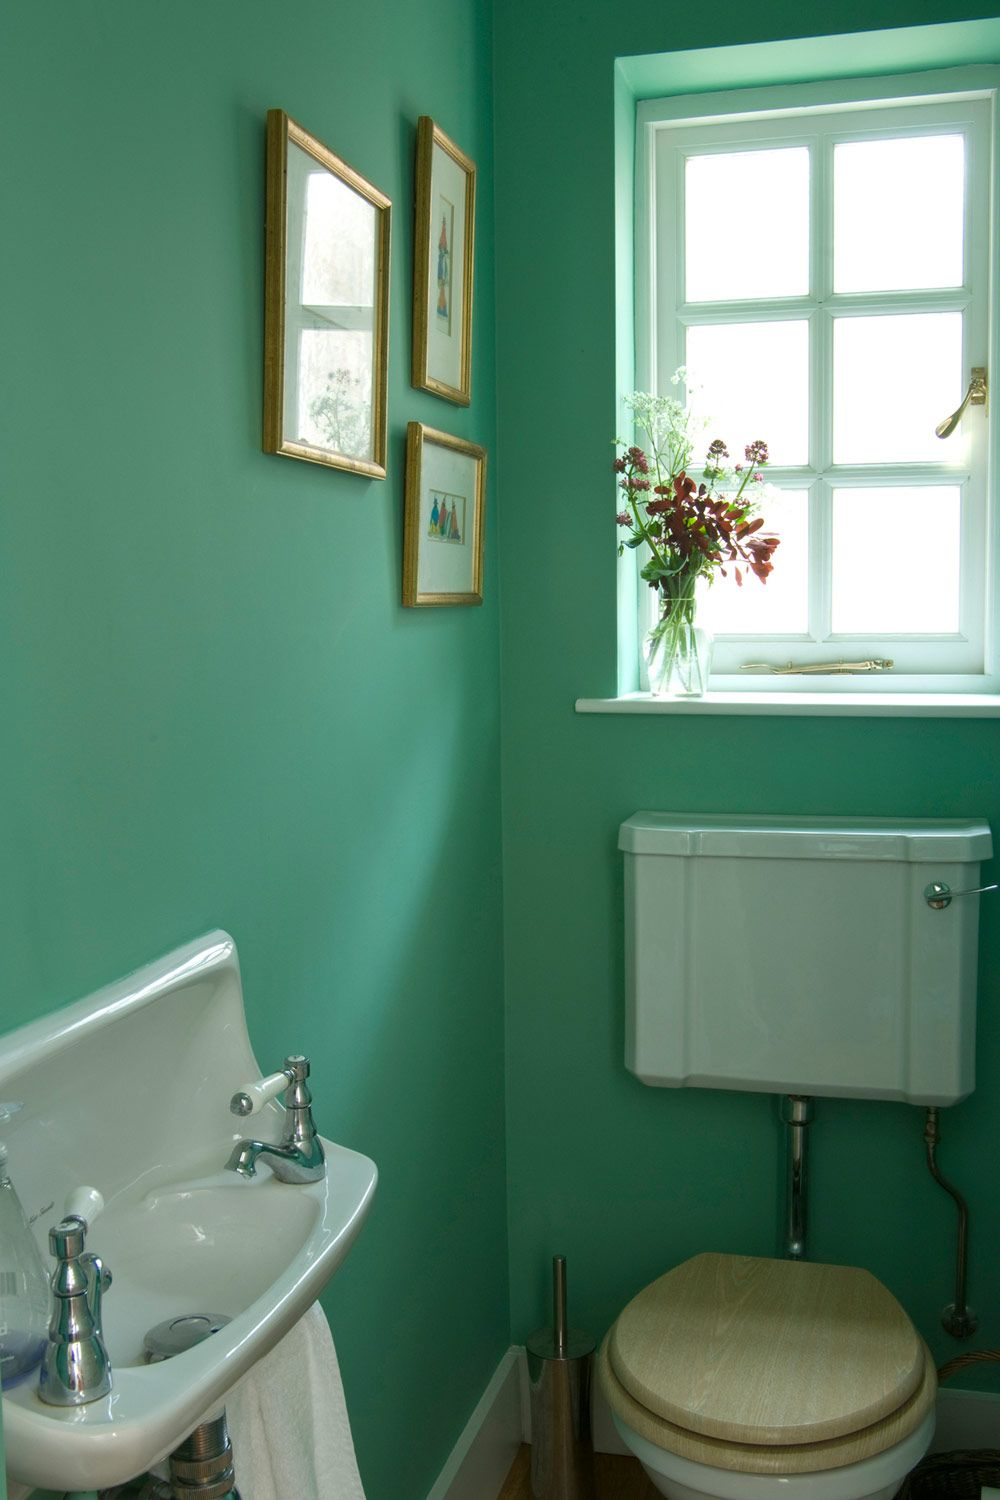 Kleurenwaaier Farrow And Ball Farrow Ball Arsenic Bathroom A Matic Badkamer Interieur